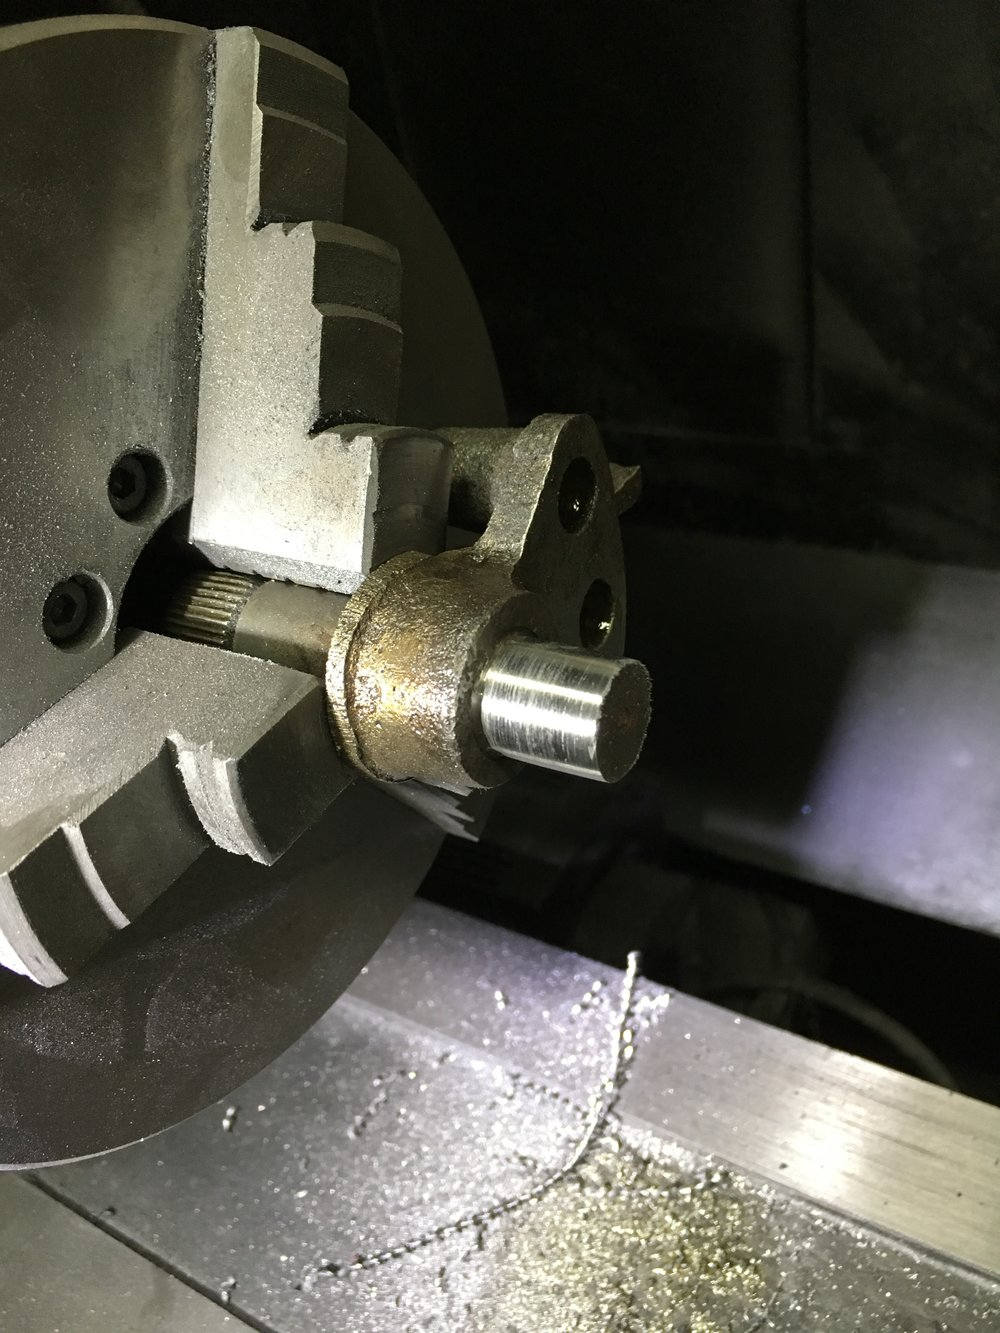 Chucking it up in the lathe allowed it to be taken to the right level. This is the after of the same surface.